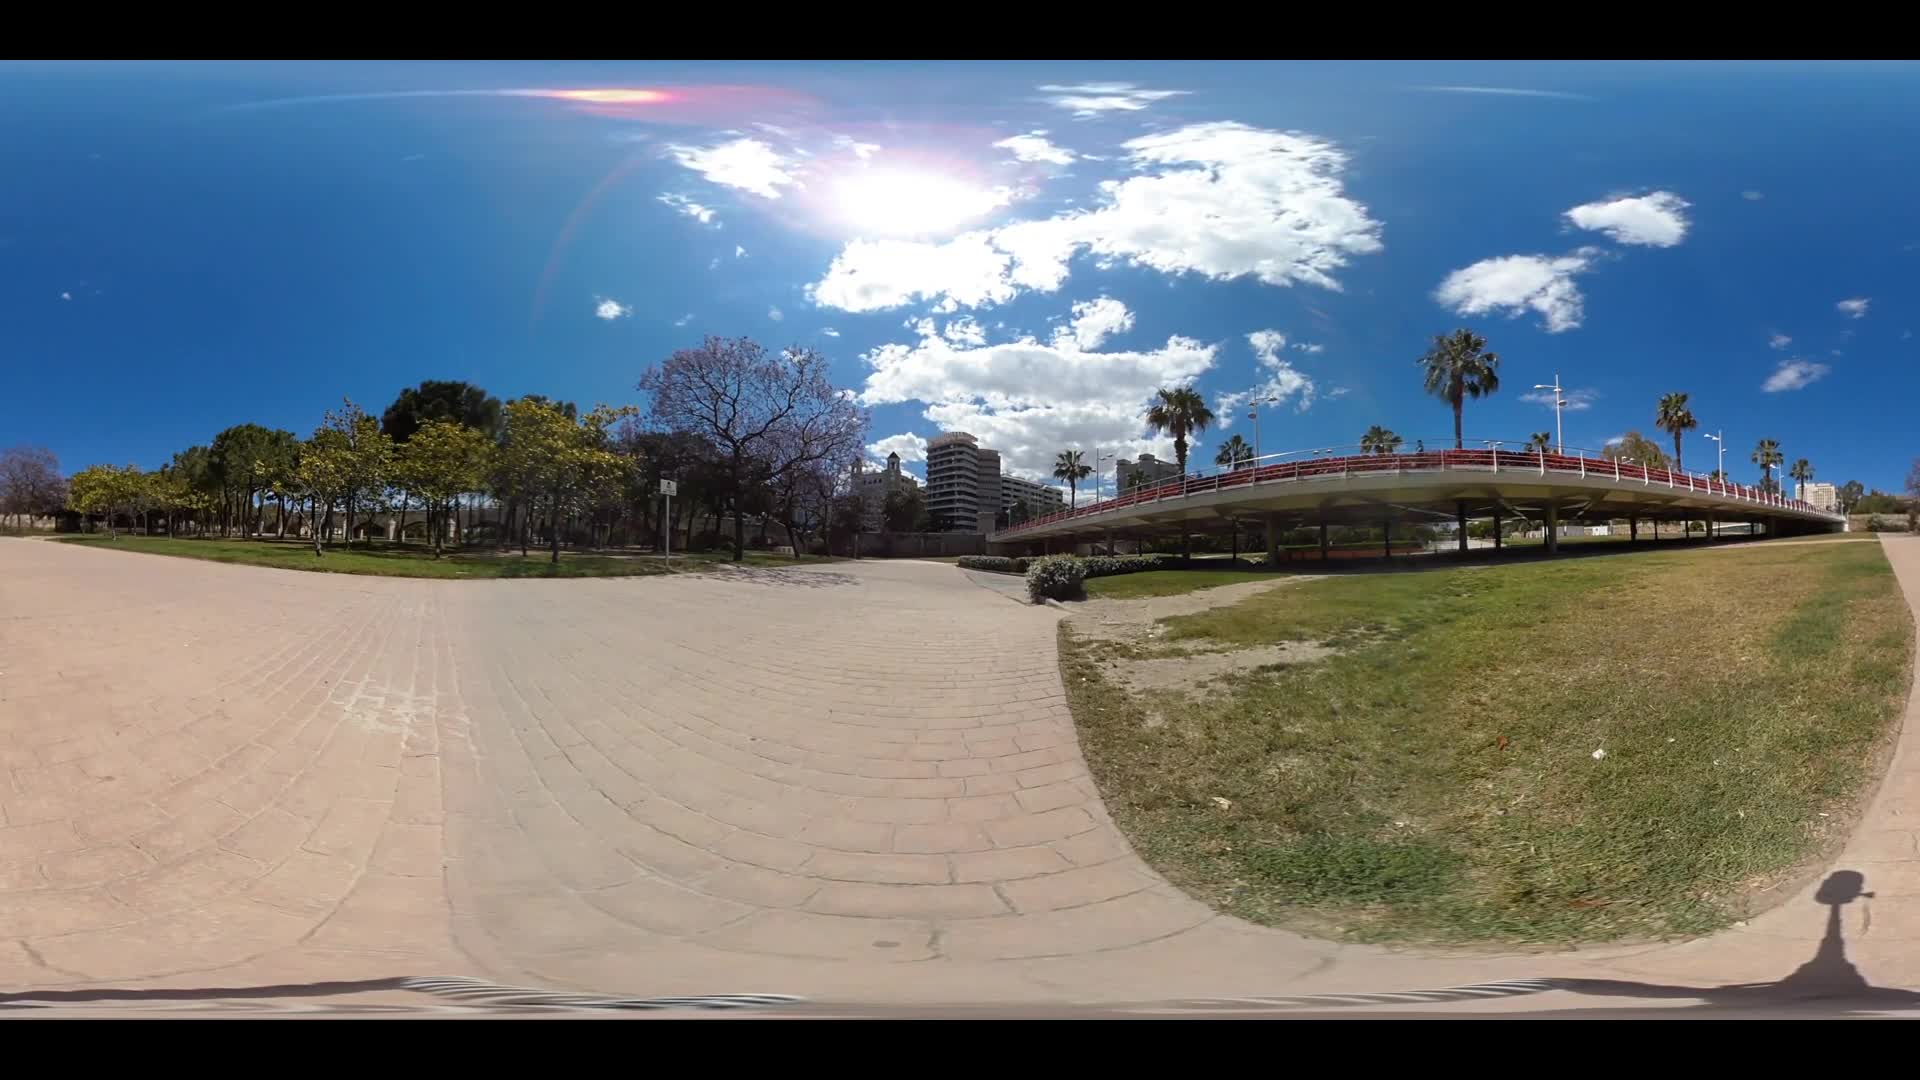 Virtual Reality 360 view from Pont de les Flors in Valencia Spain